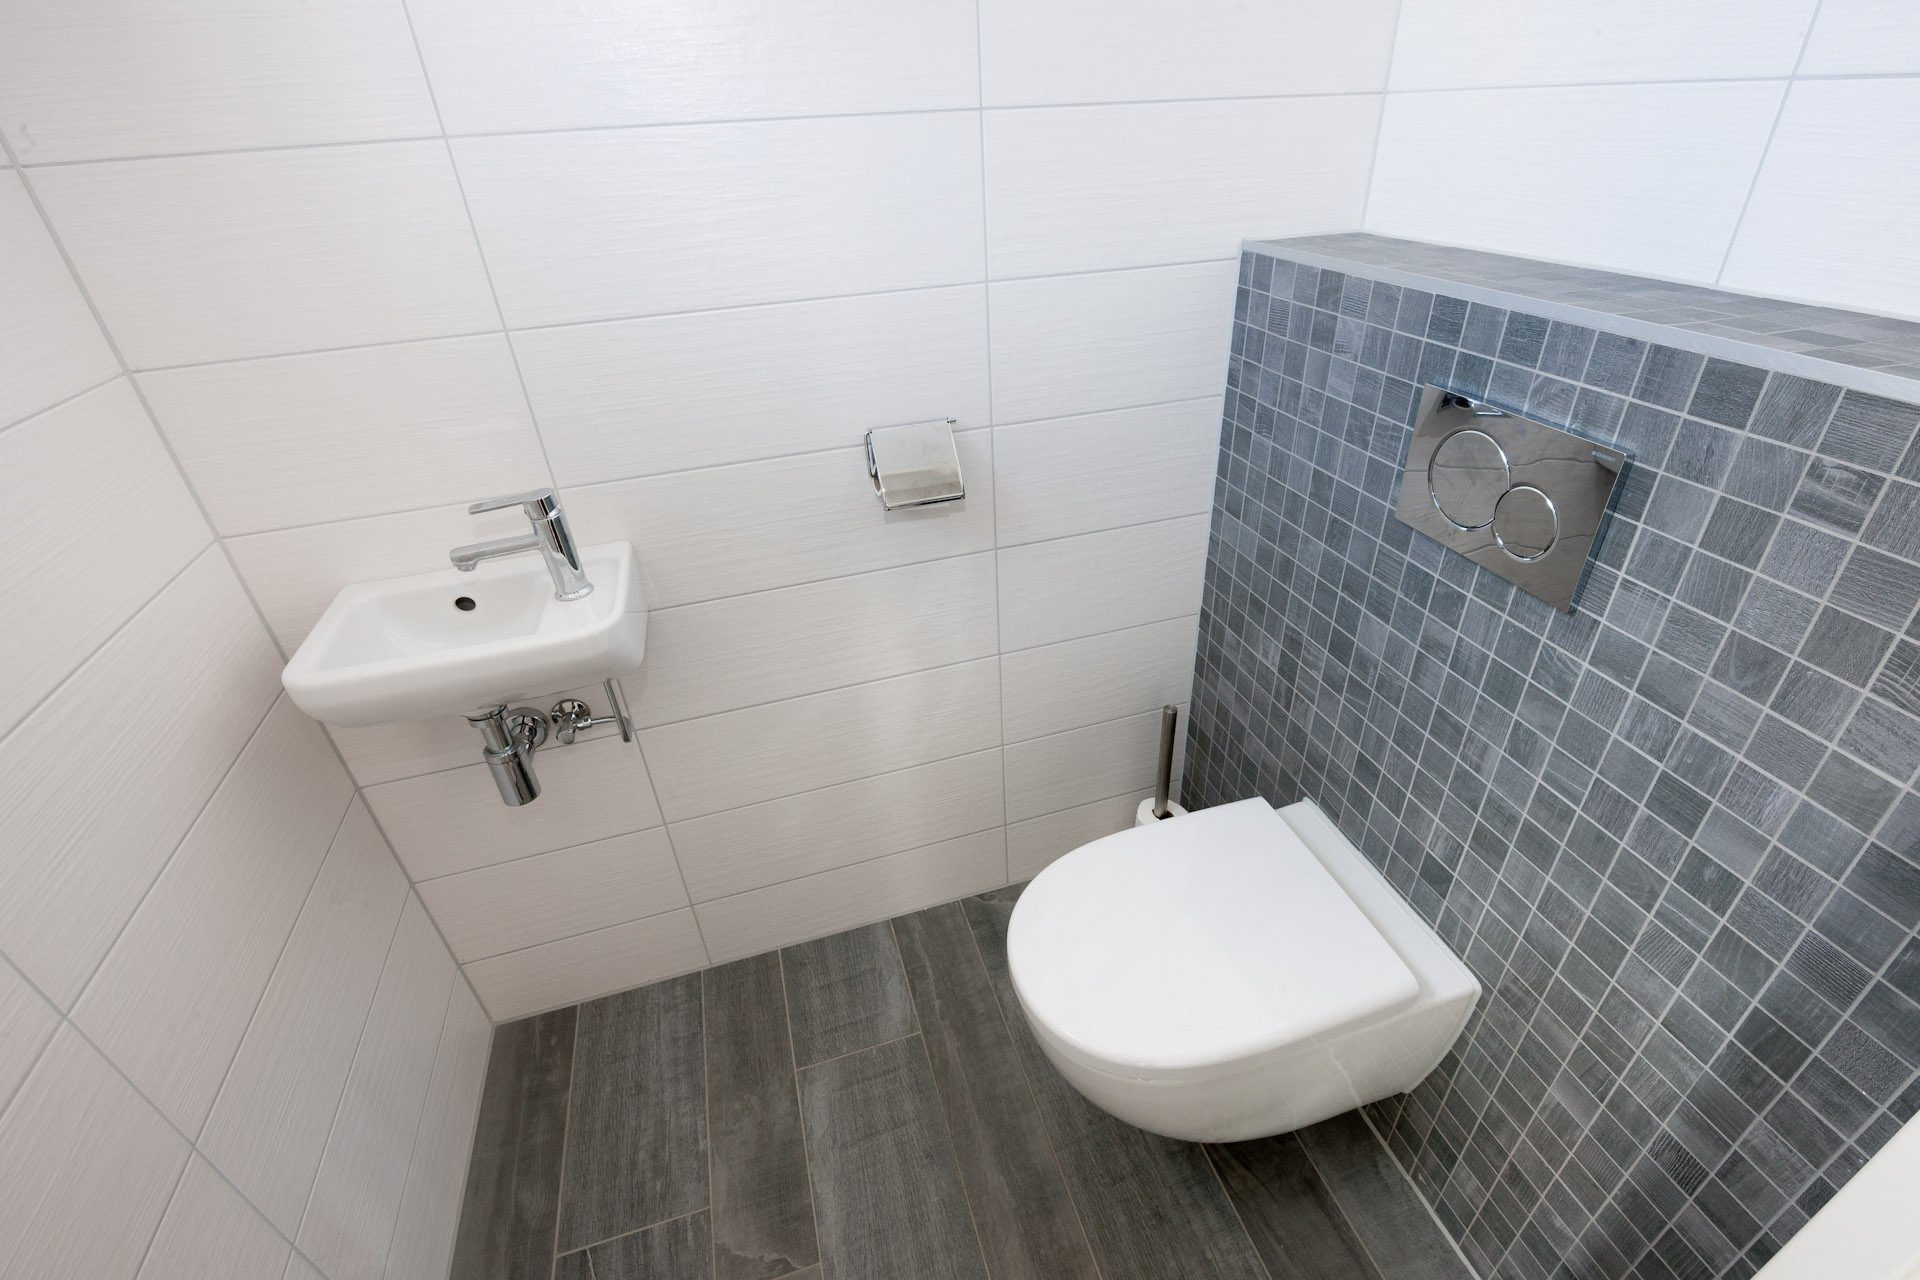 Houtlook tegels in woonkamer en moza ek in toilet kroon - Toilet tegel ...